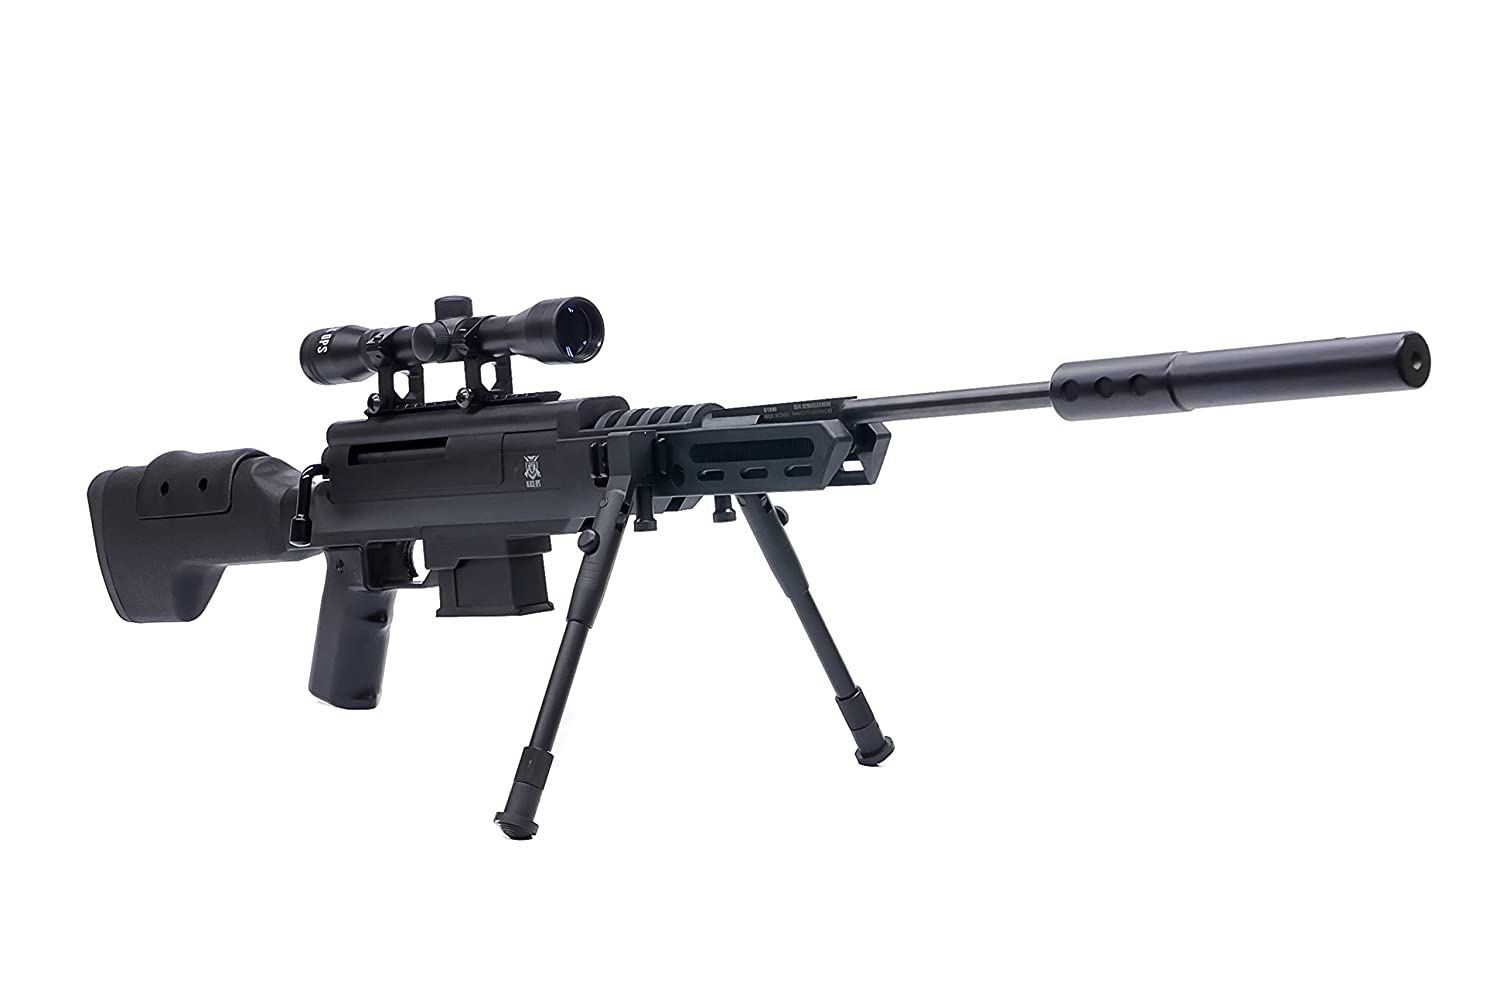 Black Ops Sniper Rifle S – Hunting Pellet Air Rifle Airgun with Suppressor